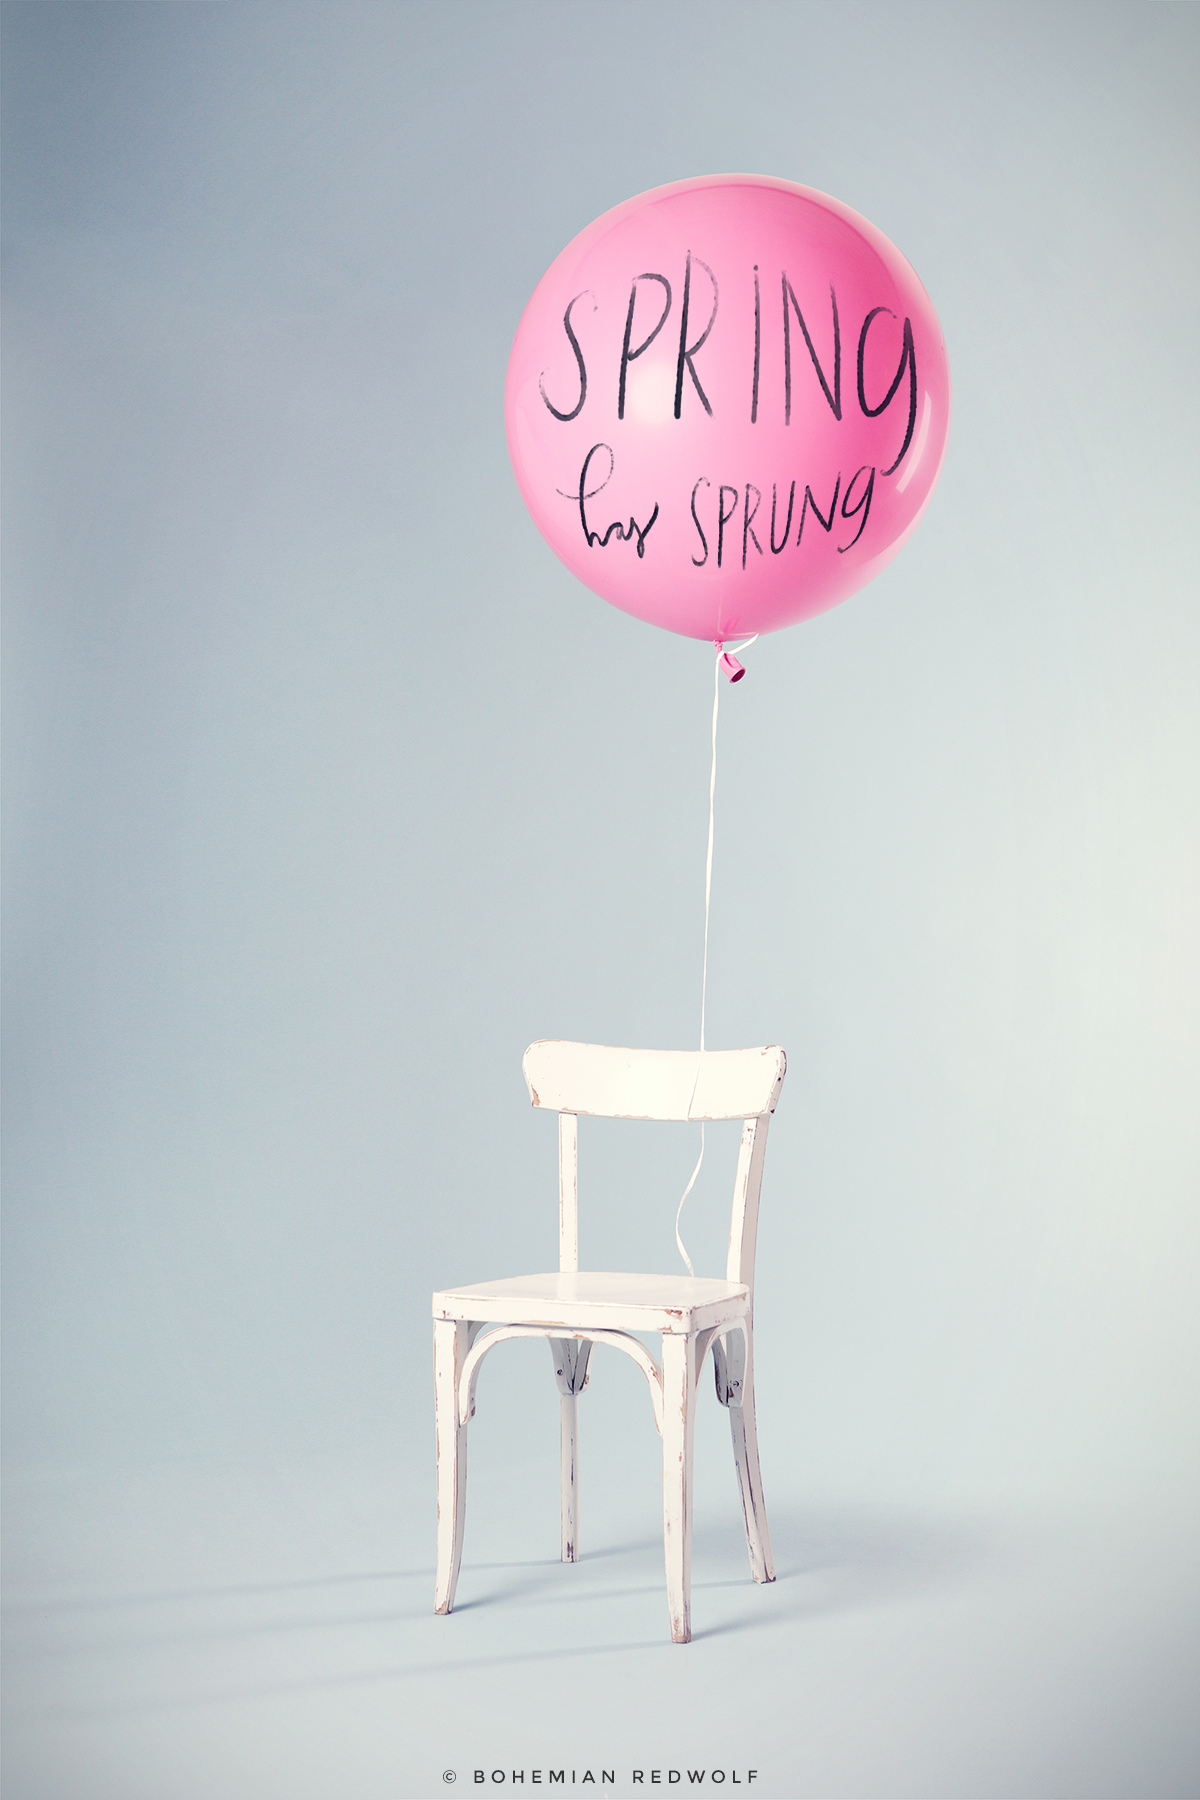 Spring Hand Lettering by Bohemian Redwolf